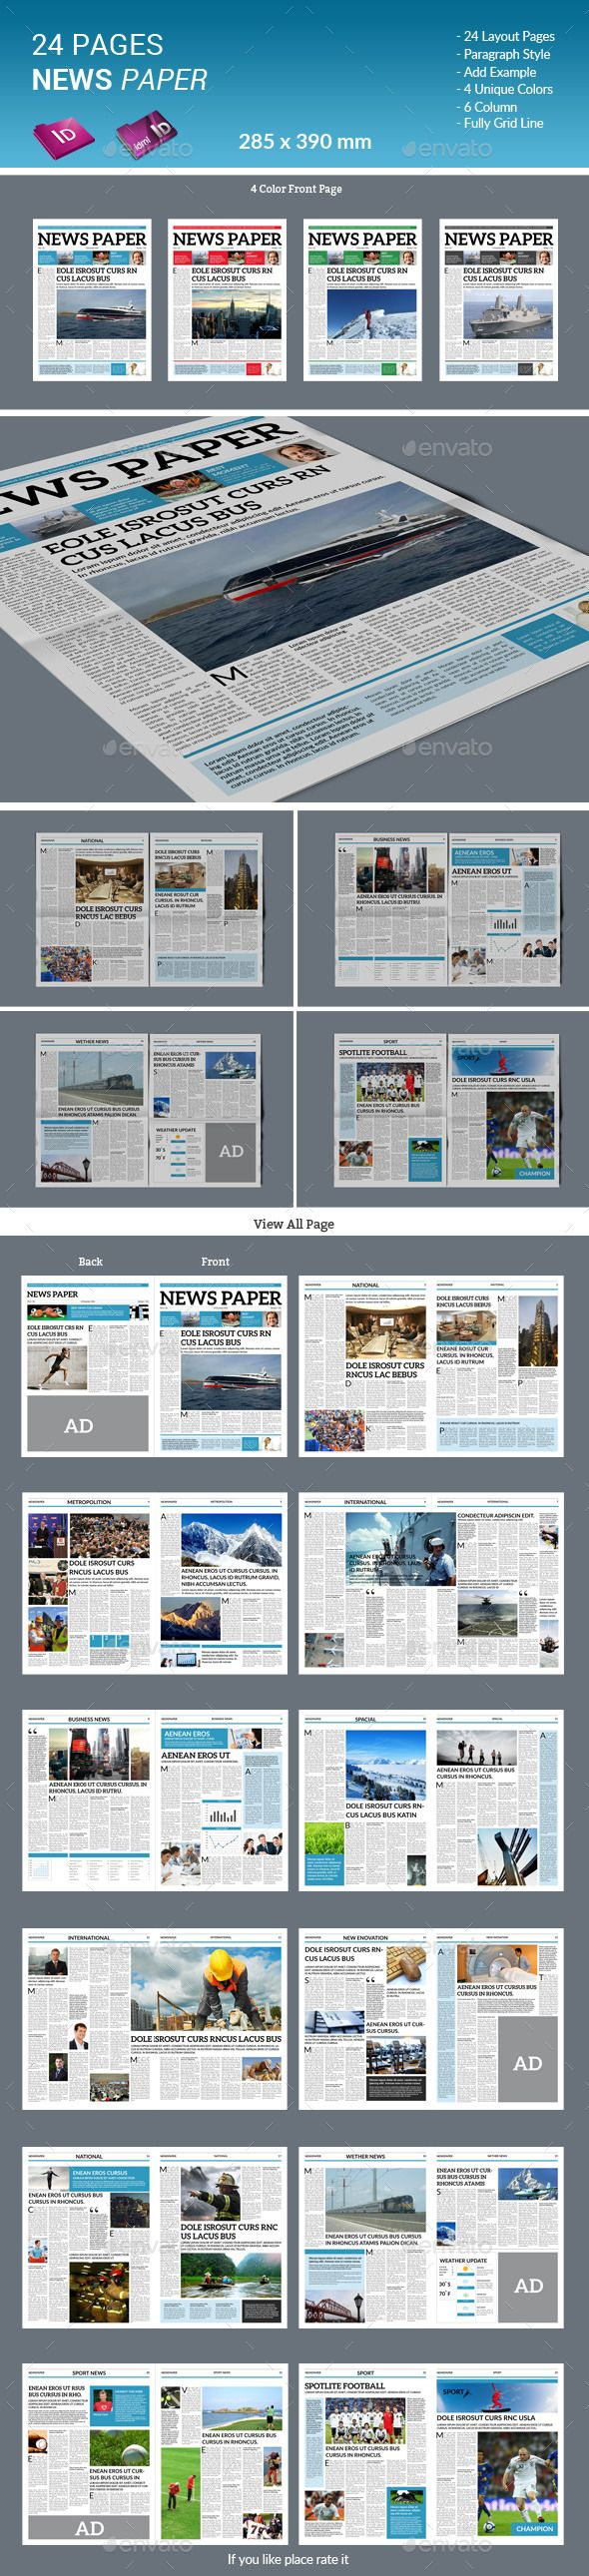 Pages Newspaper  Newspaper Print Templates And Newspaper Design